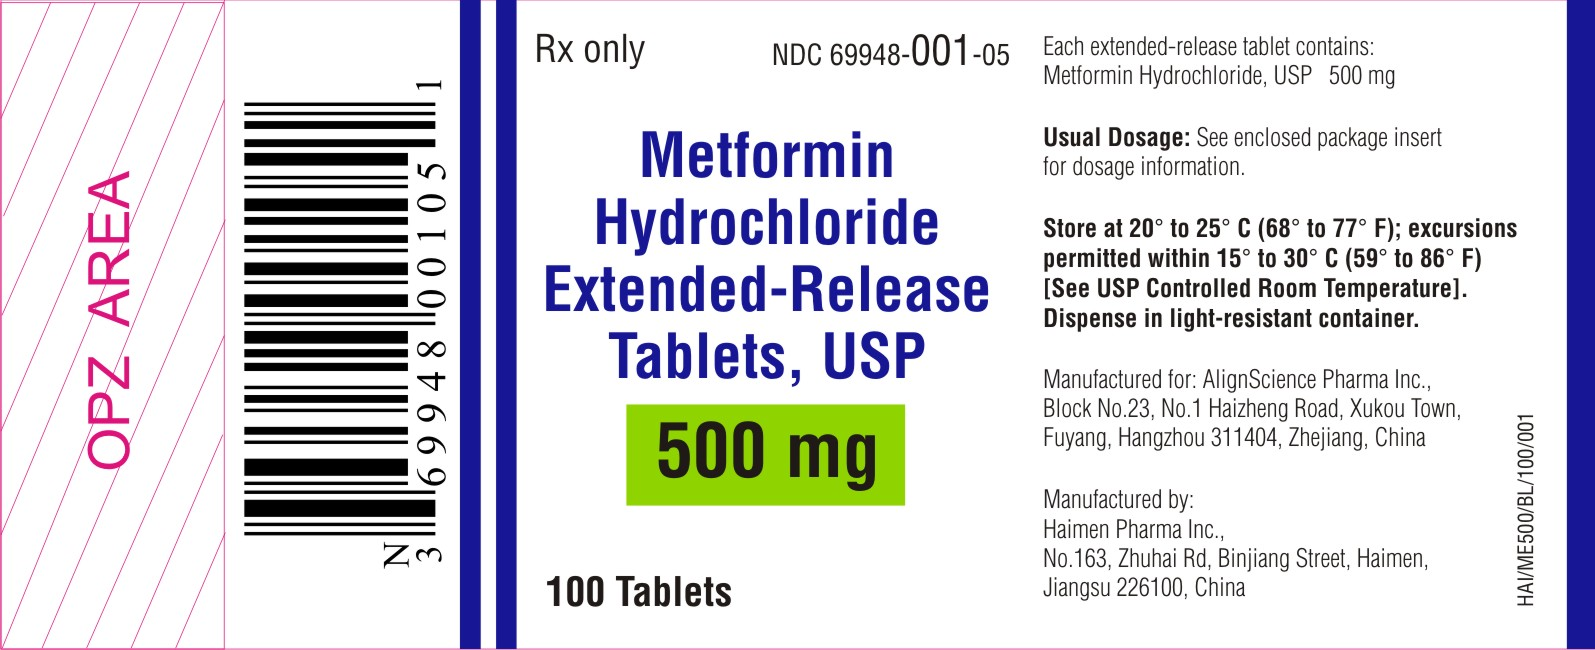 METFORMIN HYDROCHLORIDE EXTENDED-RELEASE TABLETS - 500 mg